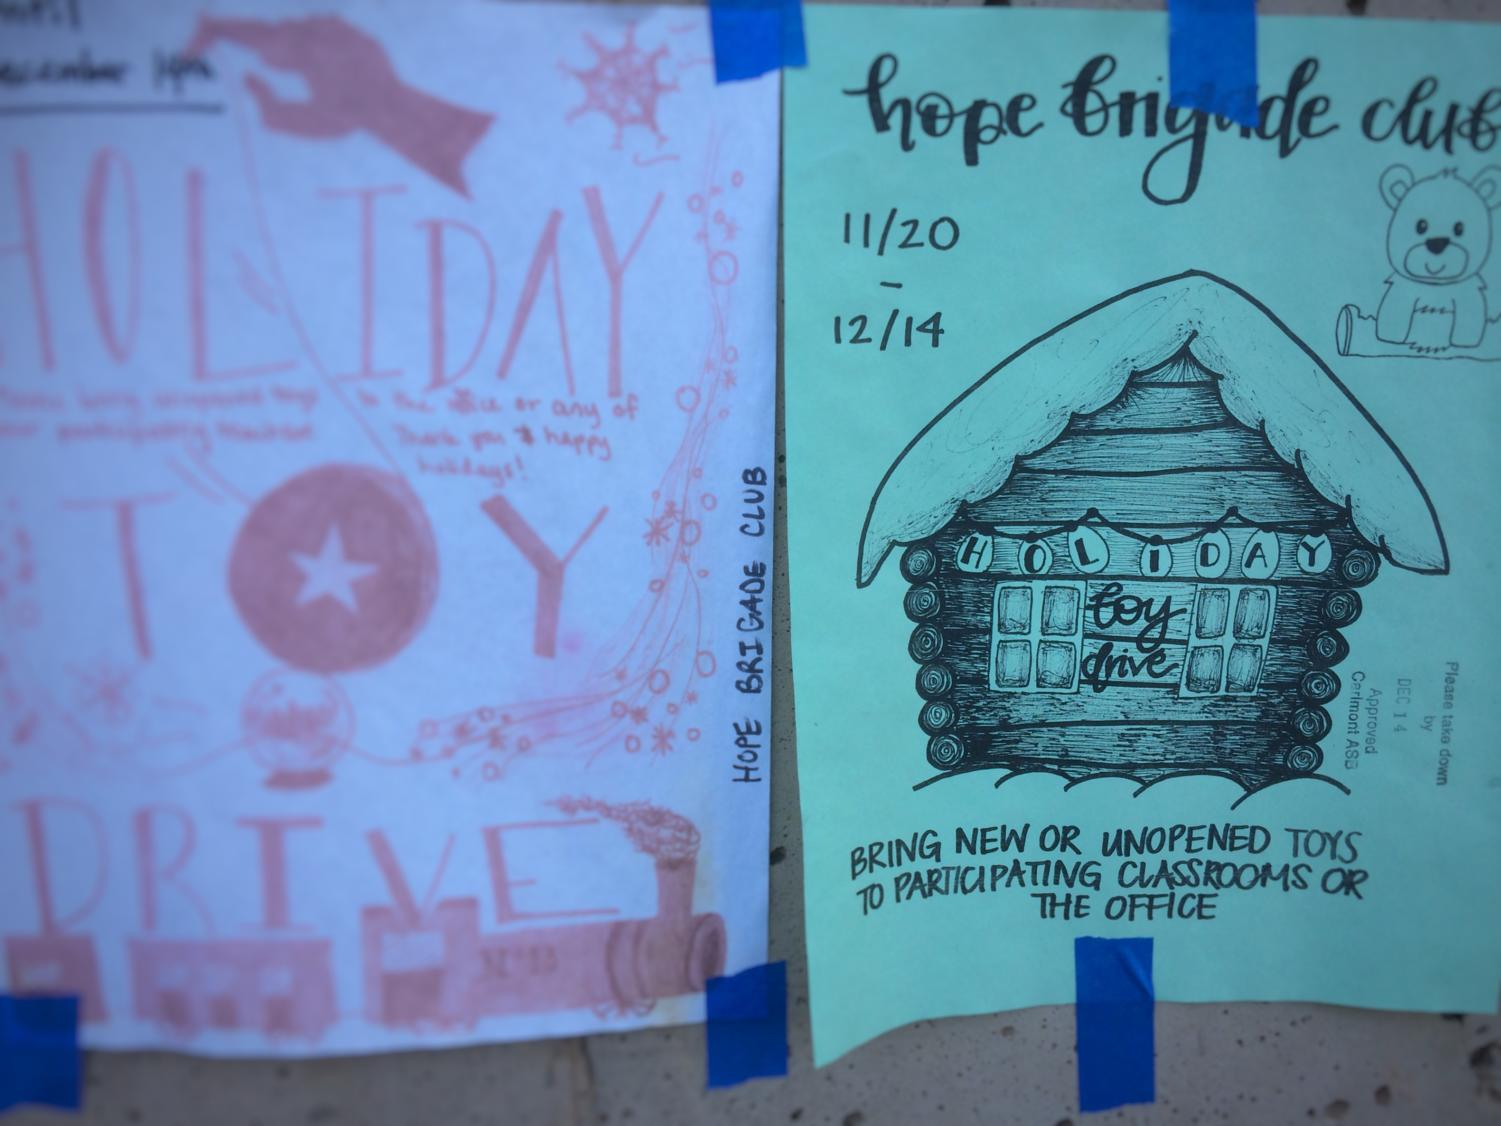 Hope Brigade Club advertises the toy drive by creating flyers and posting them around Carlmont.